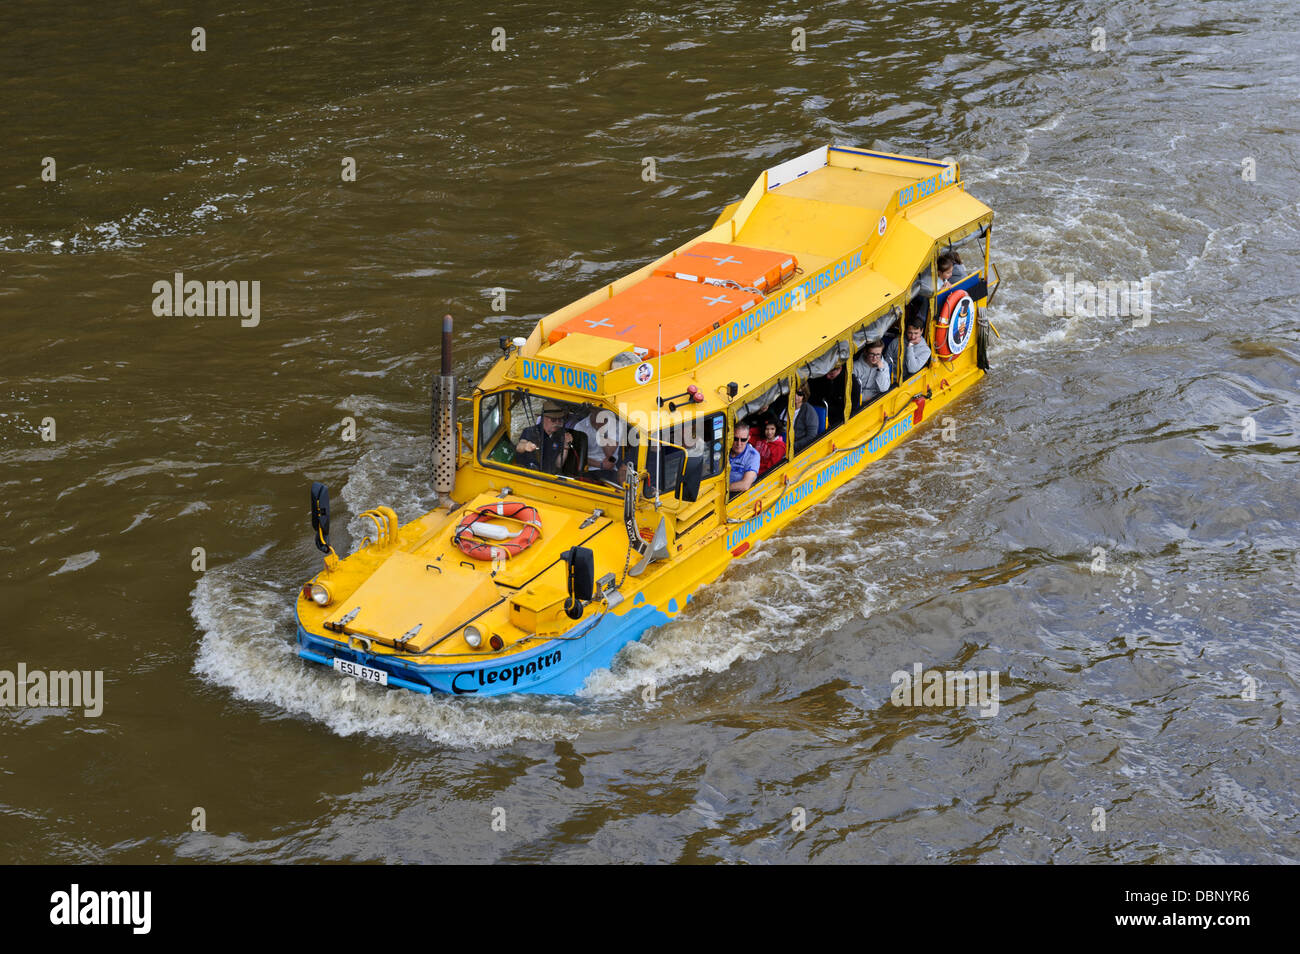 Tourists in amphibious vehicle on the Thames river, London, England, United Kingdom. - Stock Image